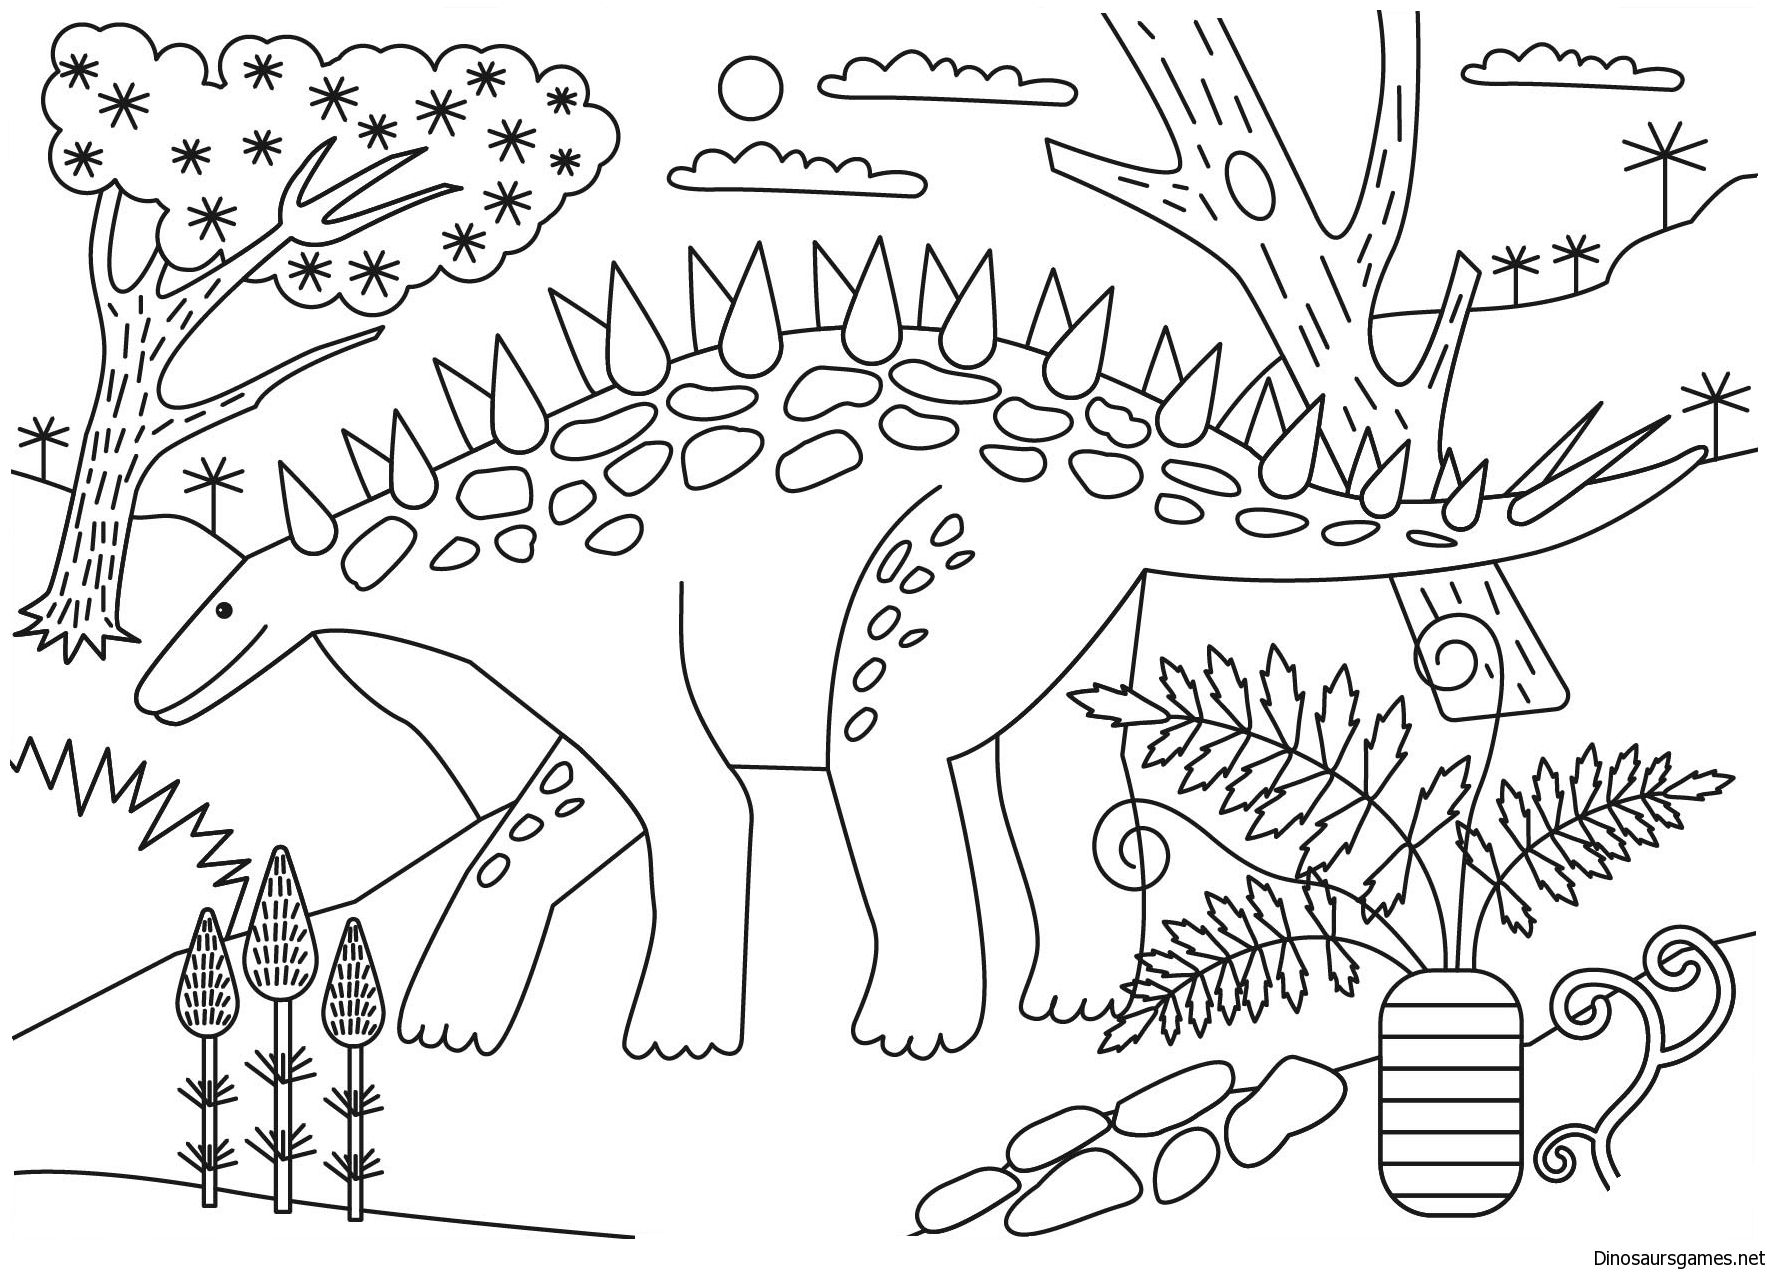 Get Chungkingosaurus Coloring Page From Dinosaursgames Net Site To